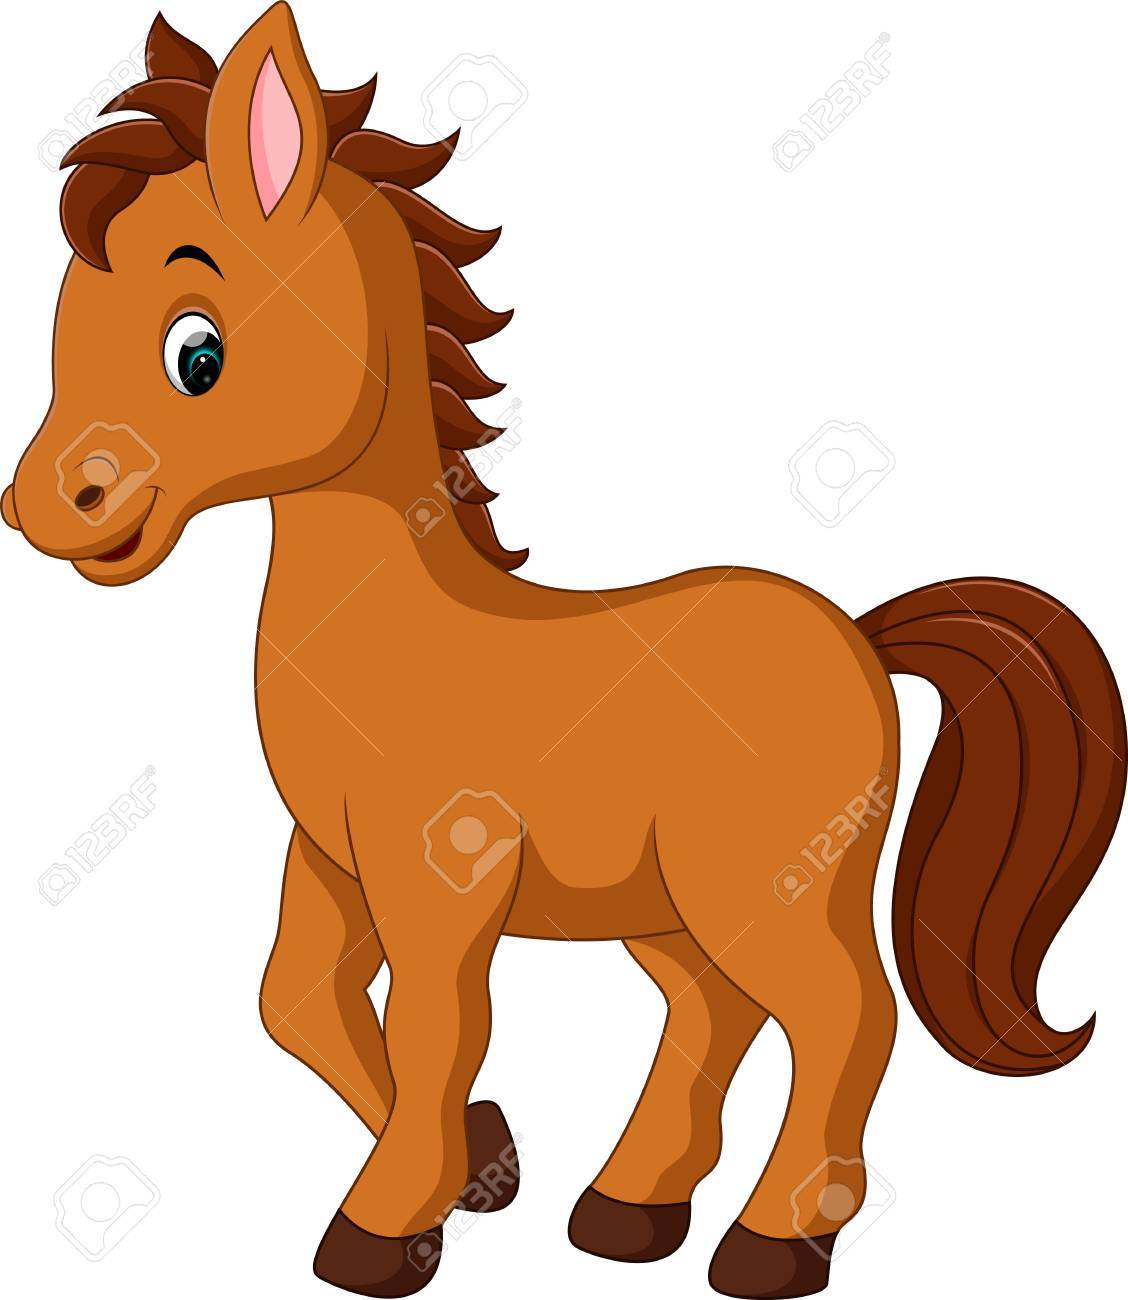 Horse Clipart Cartoon Horse Cartoon Transparent Free For Download On Webstockreview 2020